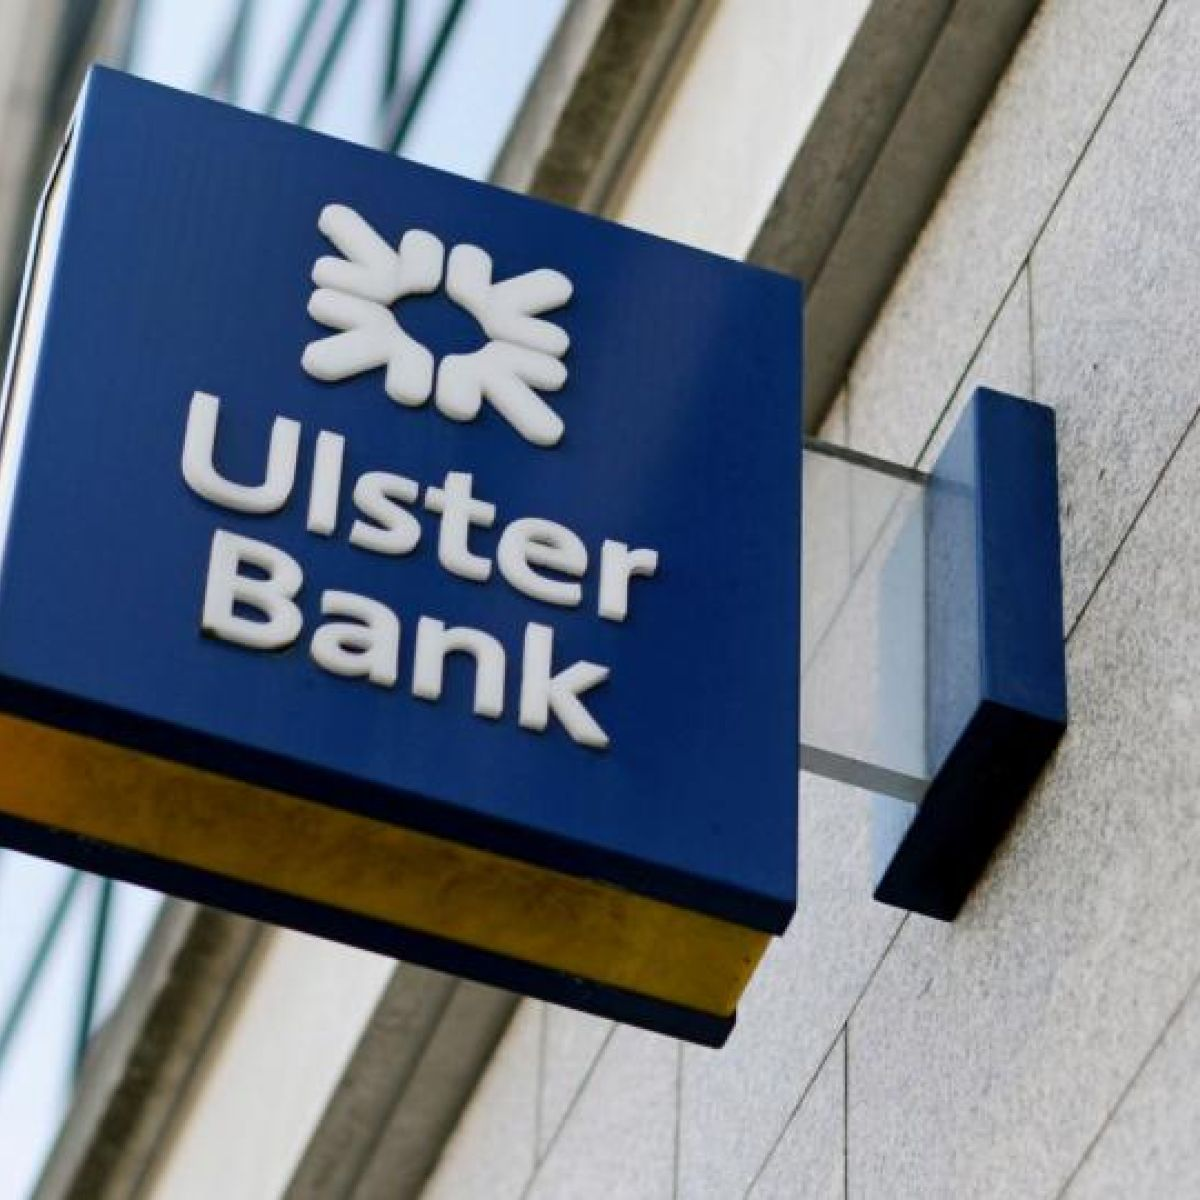 Ulster Bank customers hit by \'technical issues\'